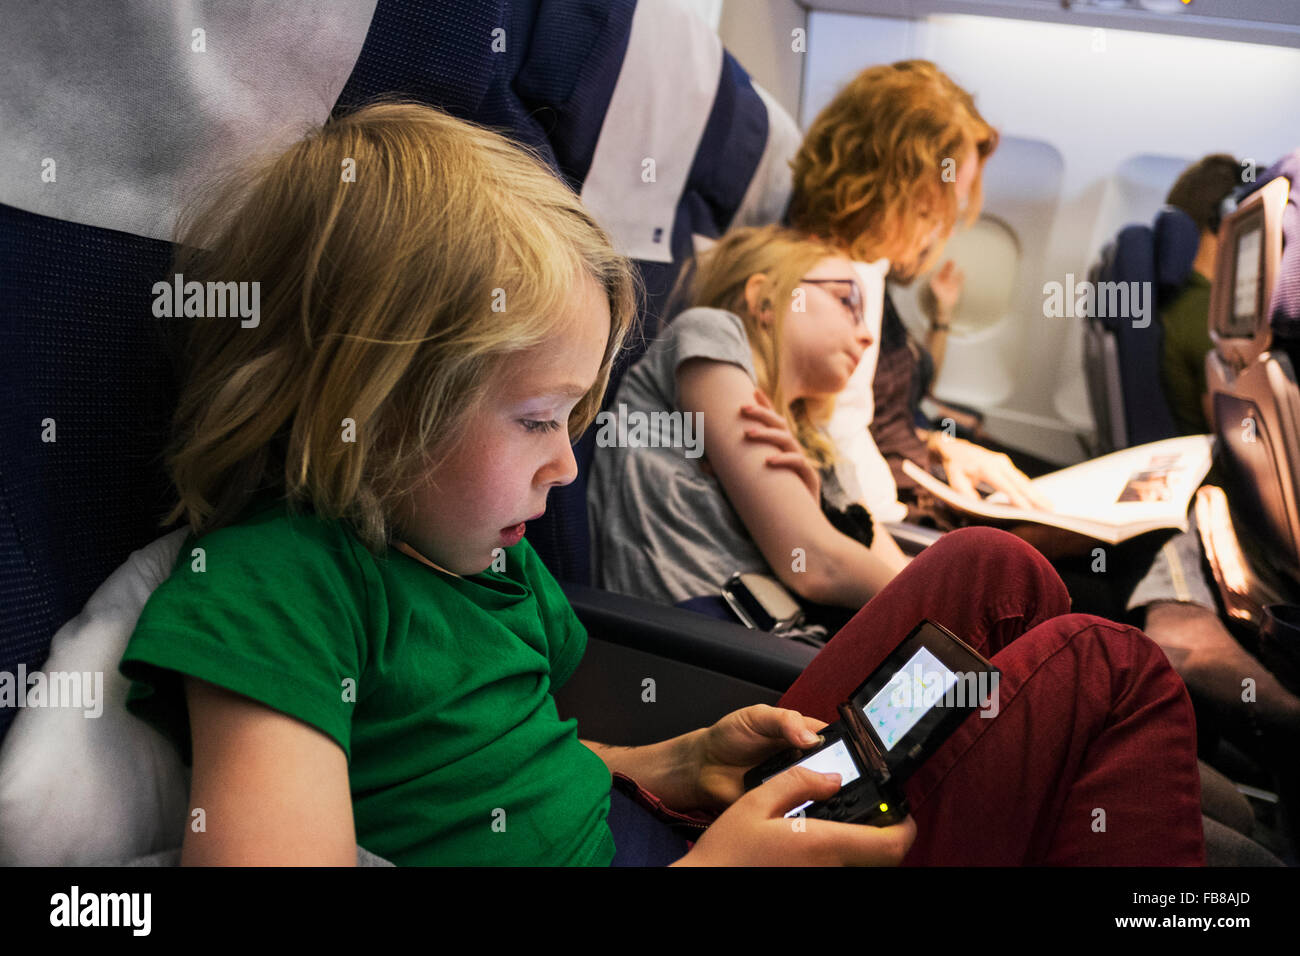 Sweden, Mother travelling by plane with children (6-7, 10-11) - Stock Image